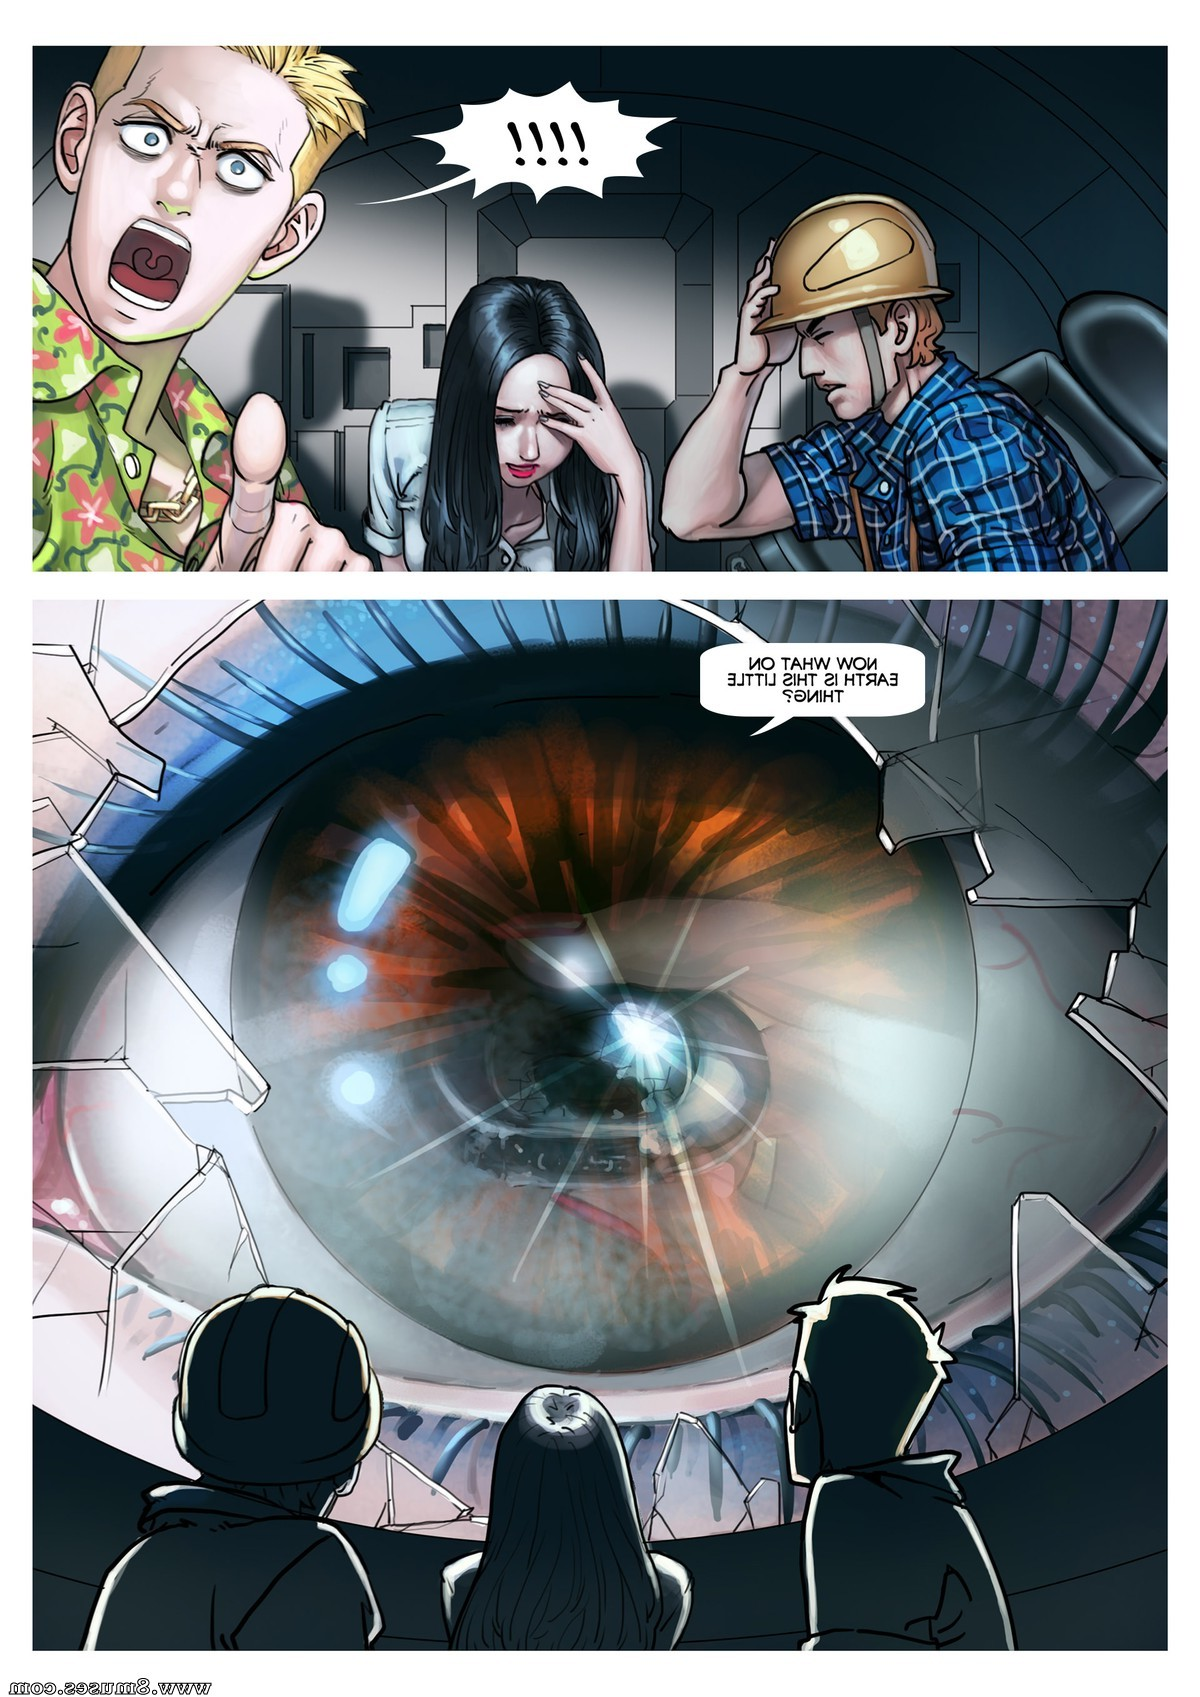 Giantess-Fan-Comics/From-The-Stars/Issue-1 From_The_Stars_-_Issue_1_8.jpg